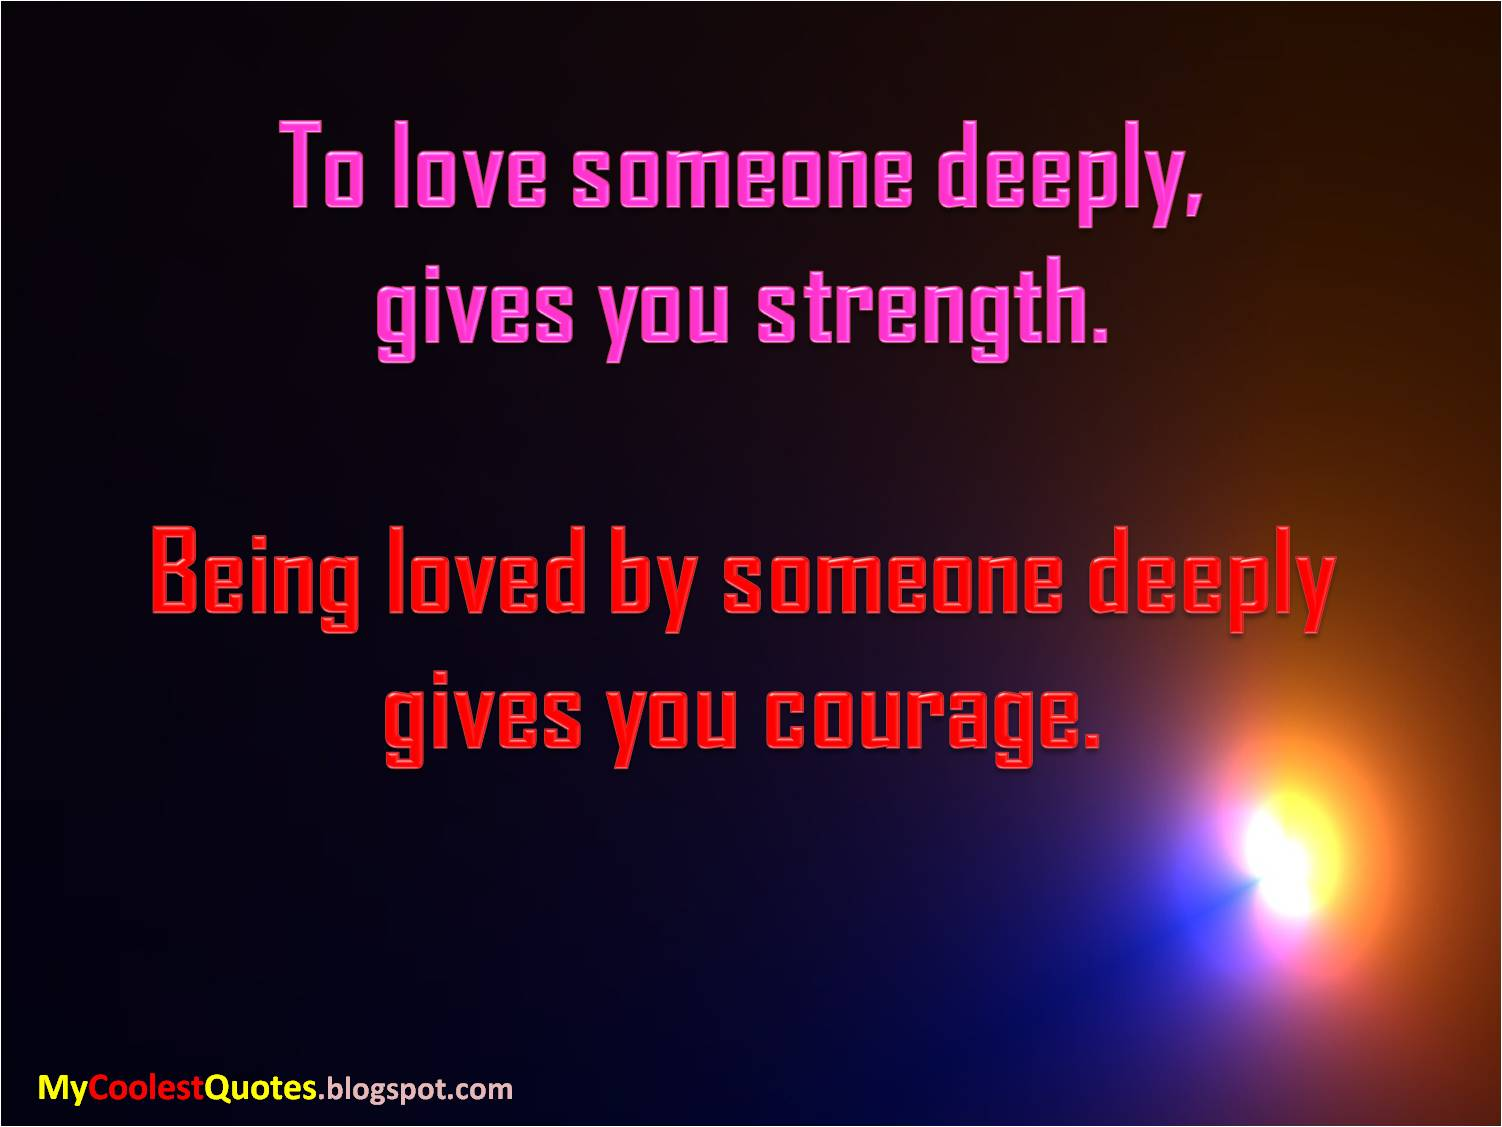 Quotes About Loving Someone My Coolest Quotes To Love Someone Deeply Gives You.